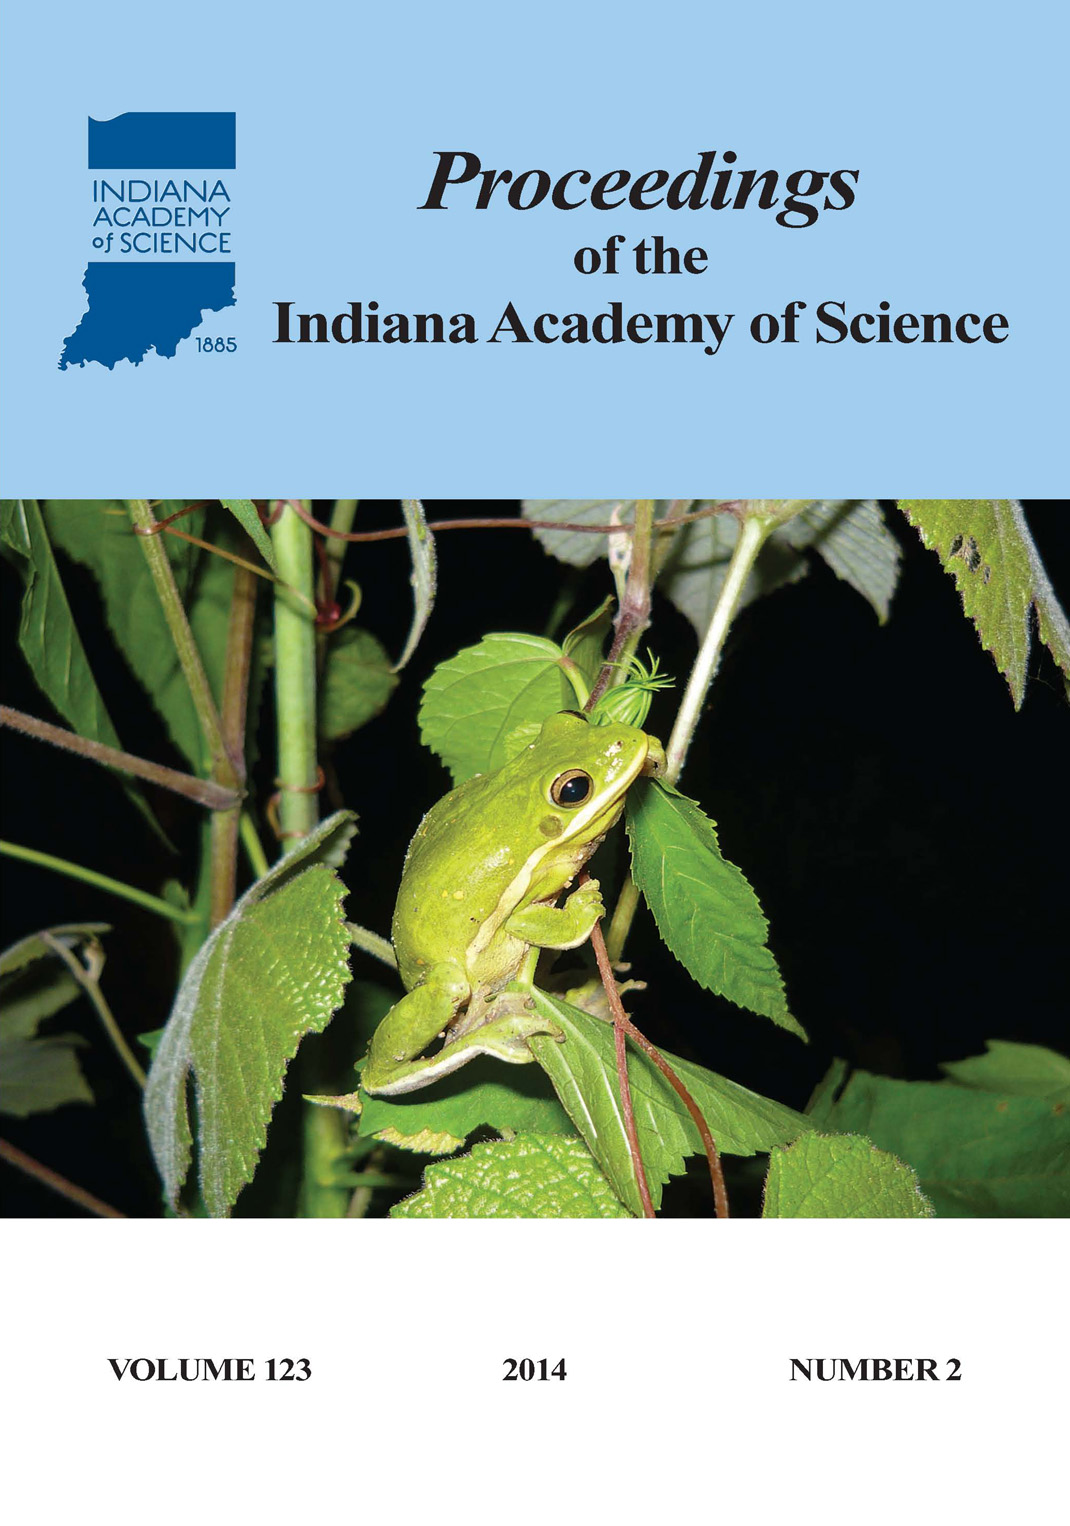 Proceedings of the Indiana Academy of Science 123:2 2014